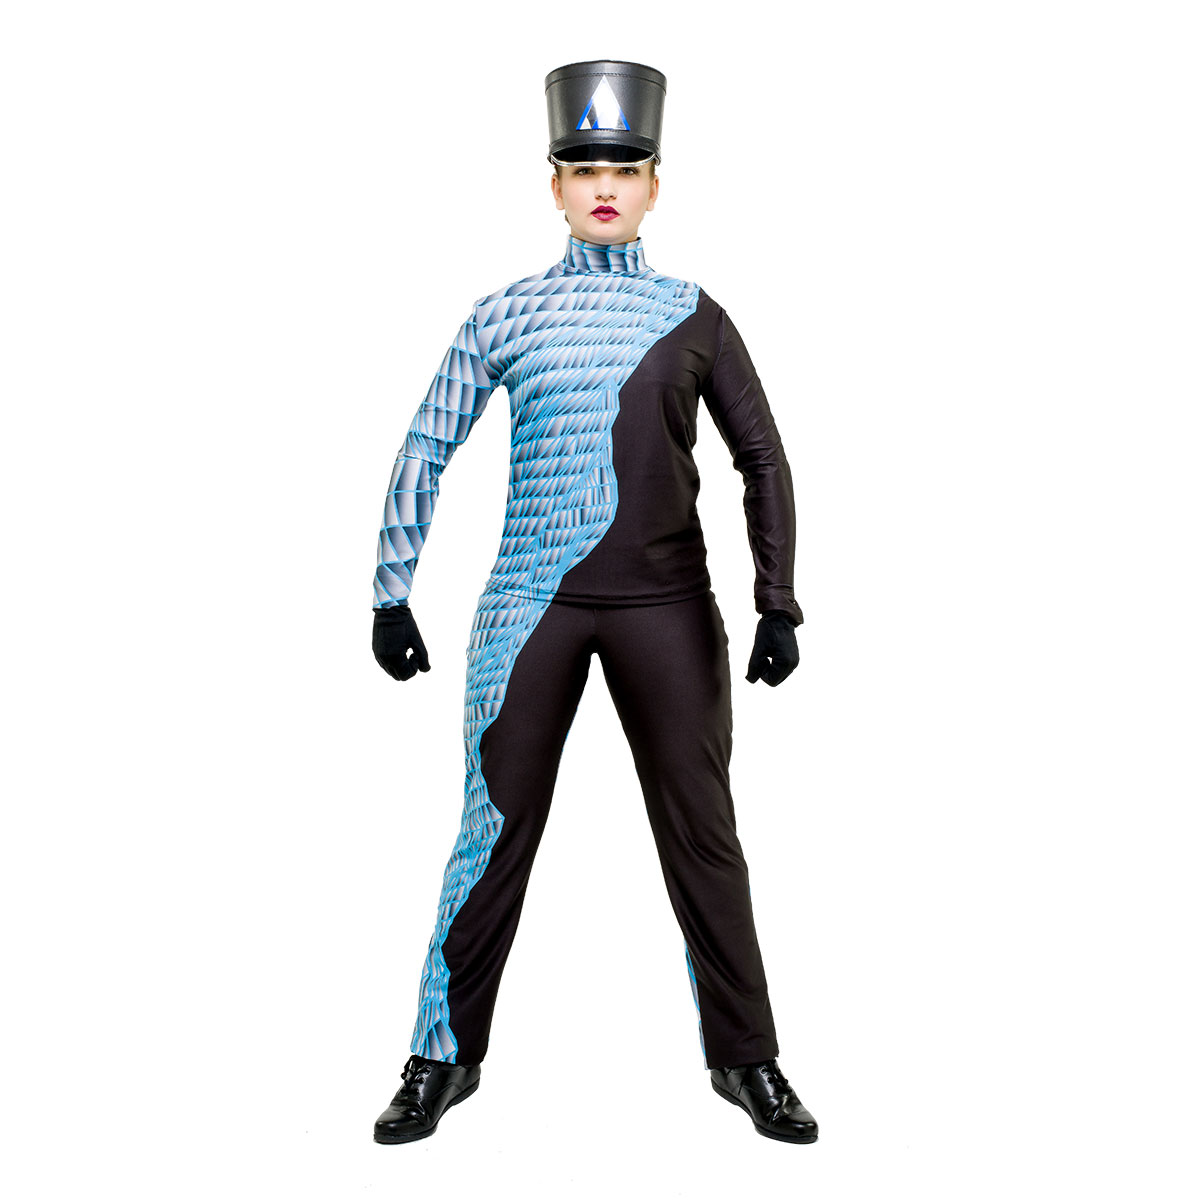 Digital Band Uniforms: Style 1809